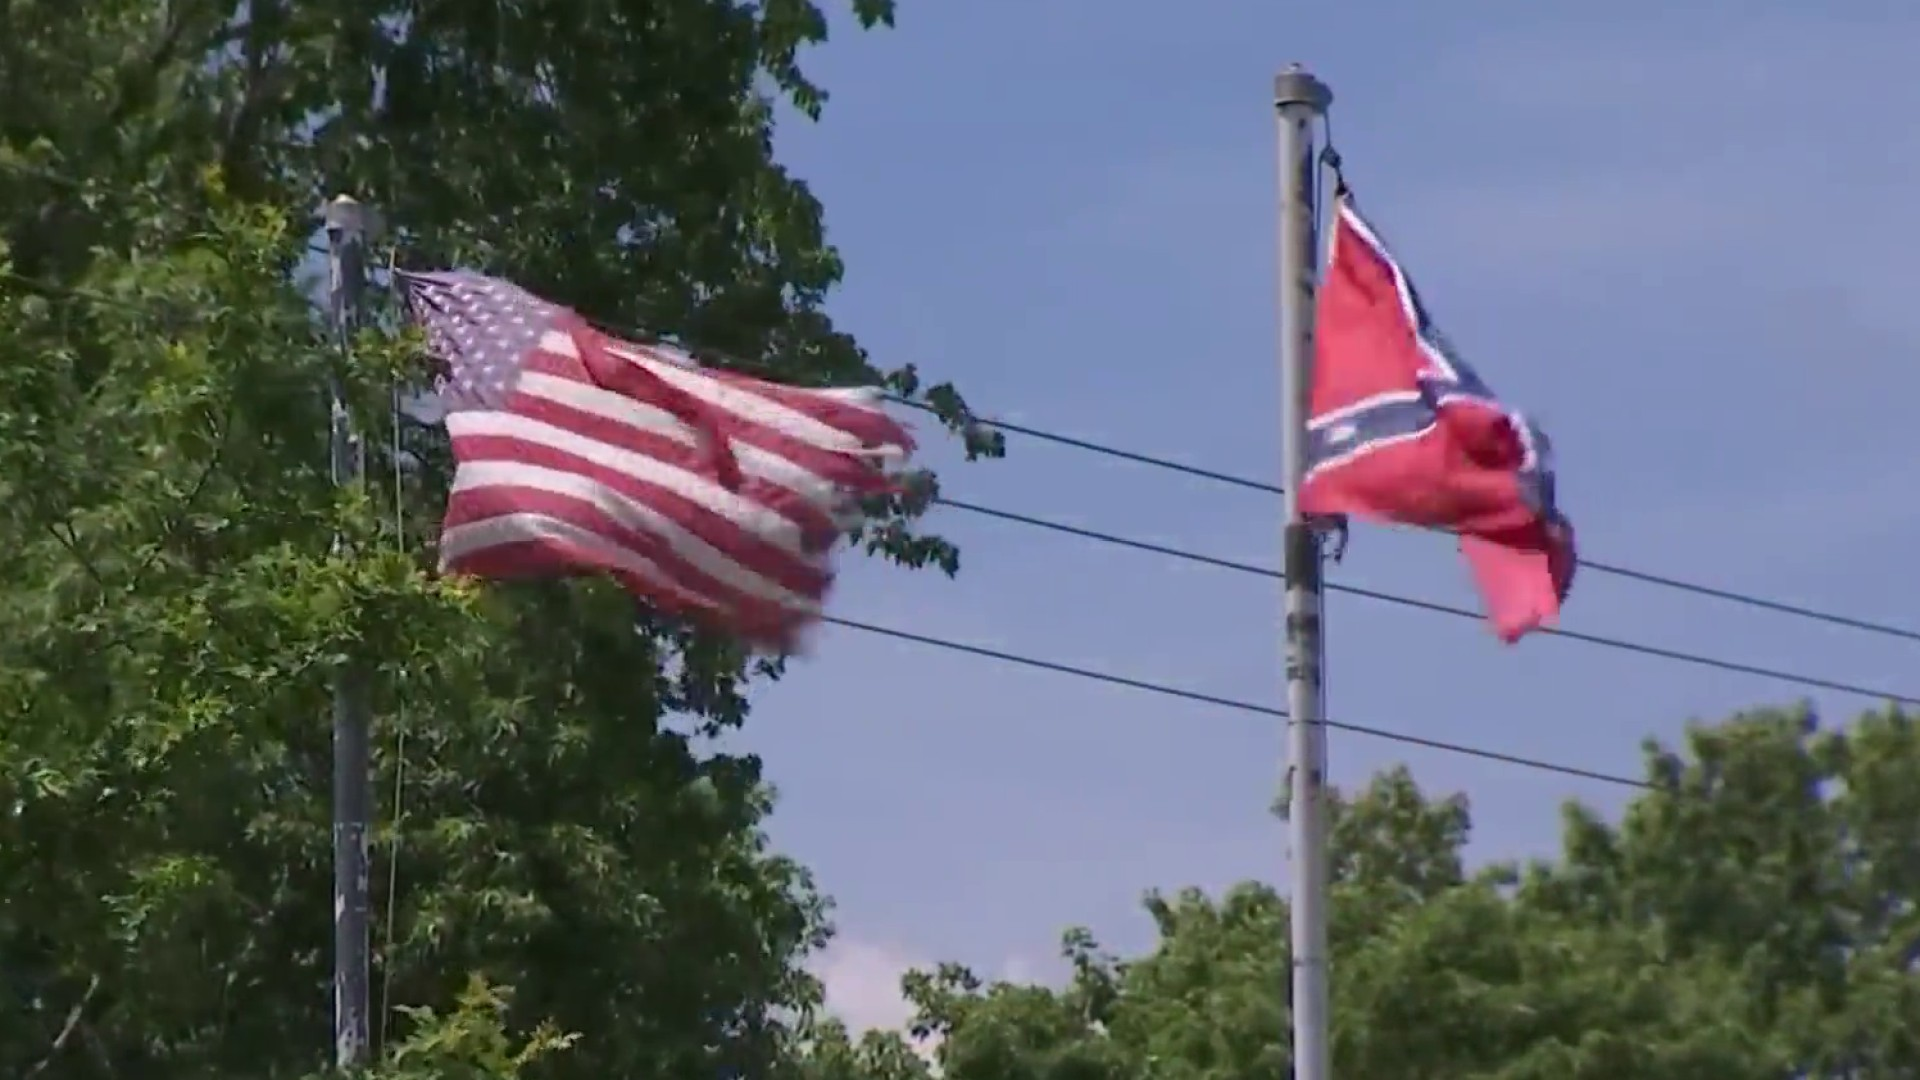 Confederate Flag Taken in Virginia, New One Hoisted in Its Place